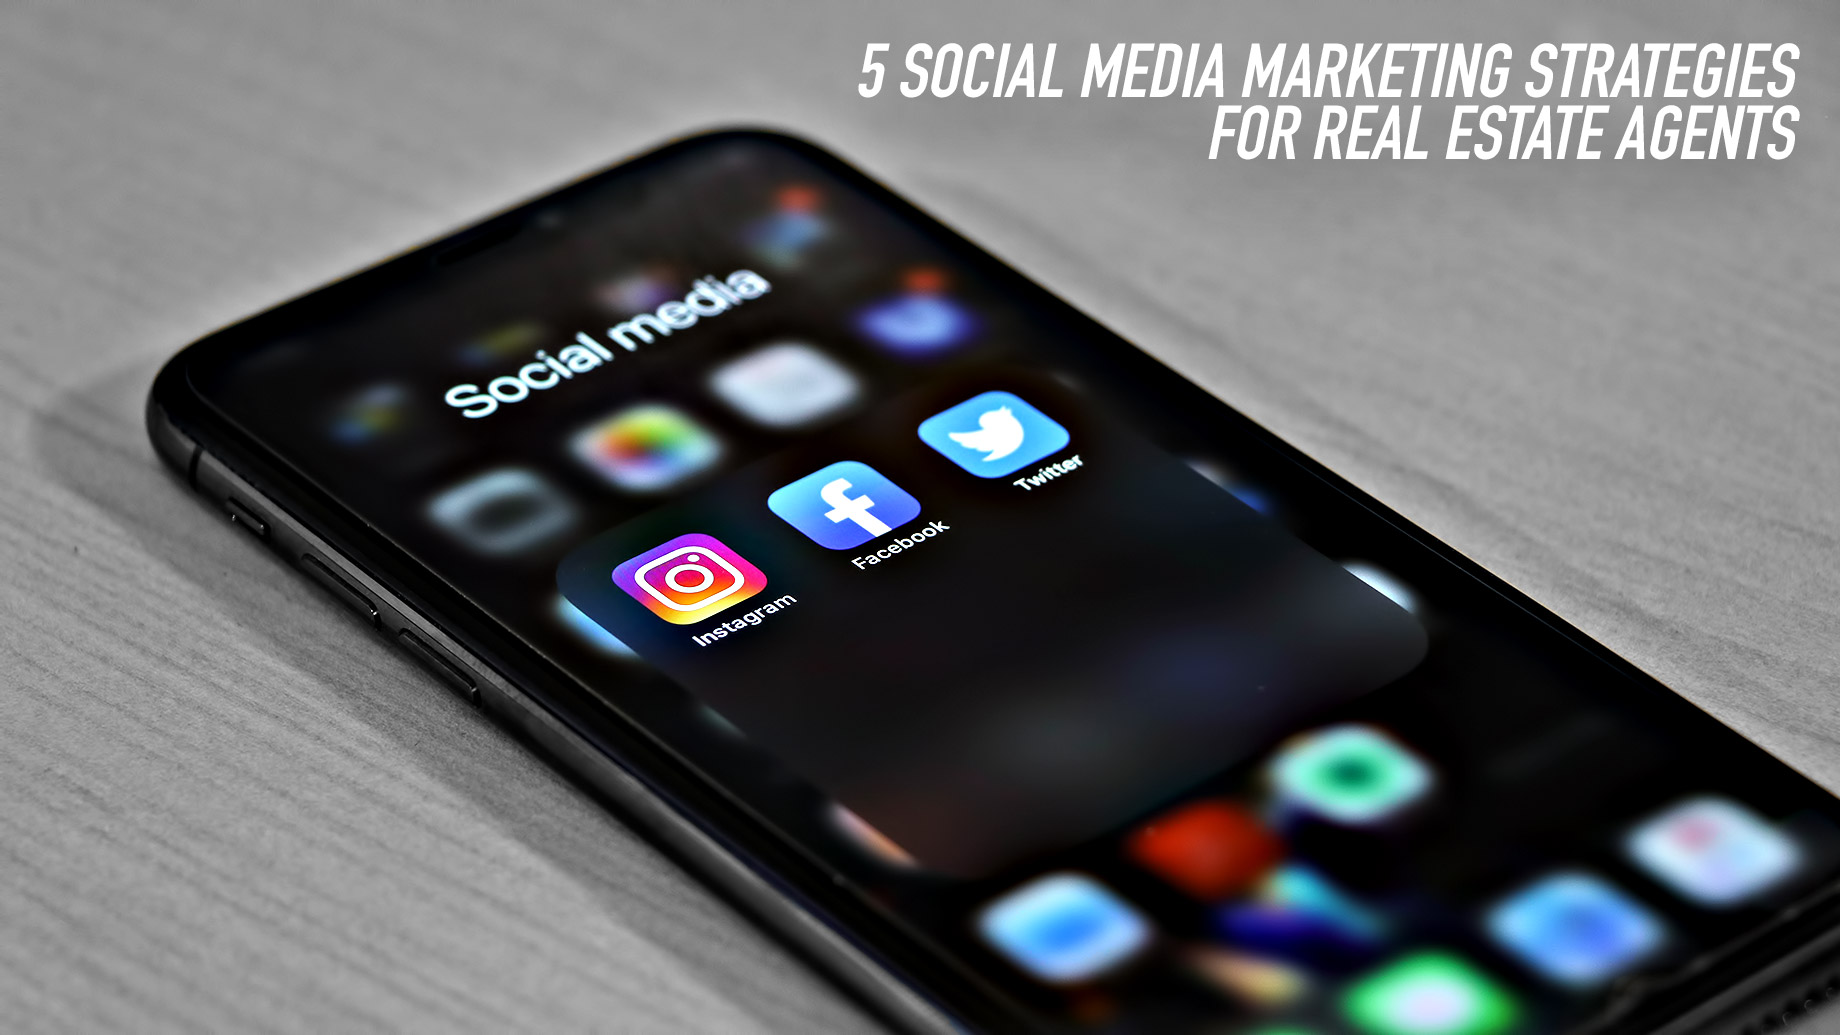 5 Social Media Marketing Strategies for Real Estate Agents in 2021